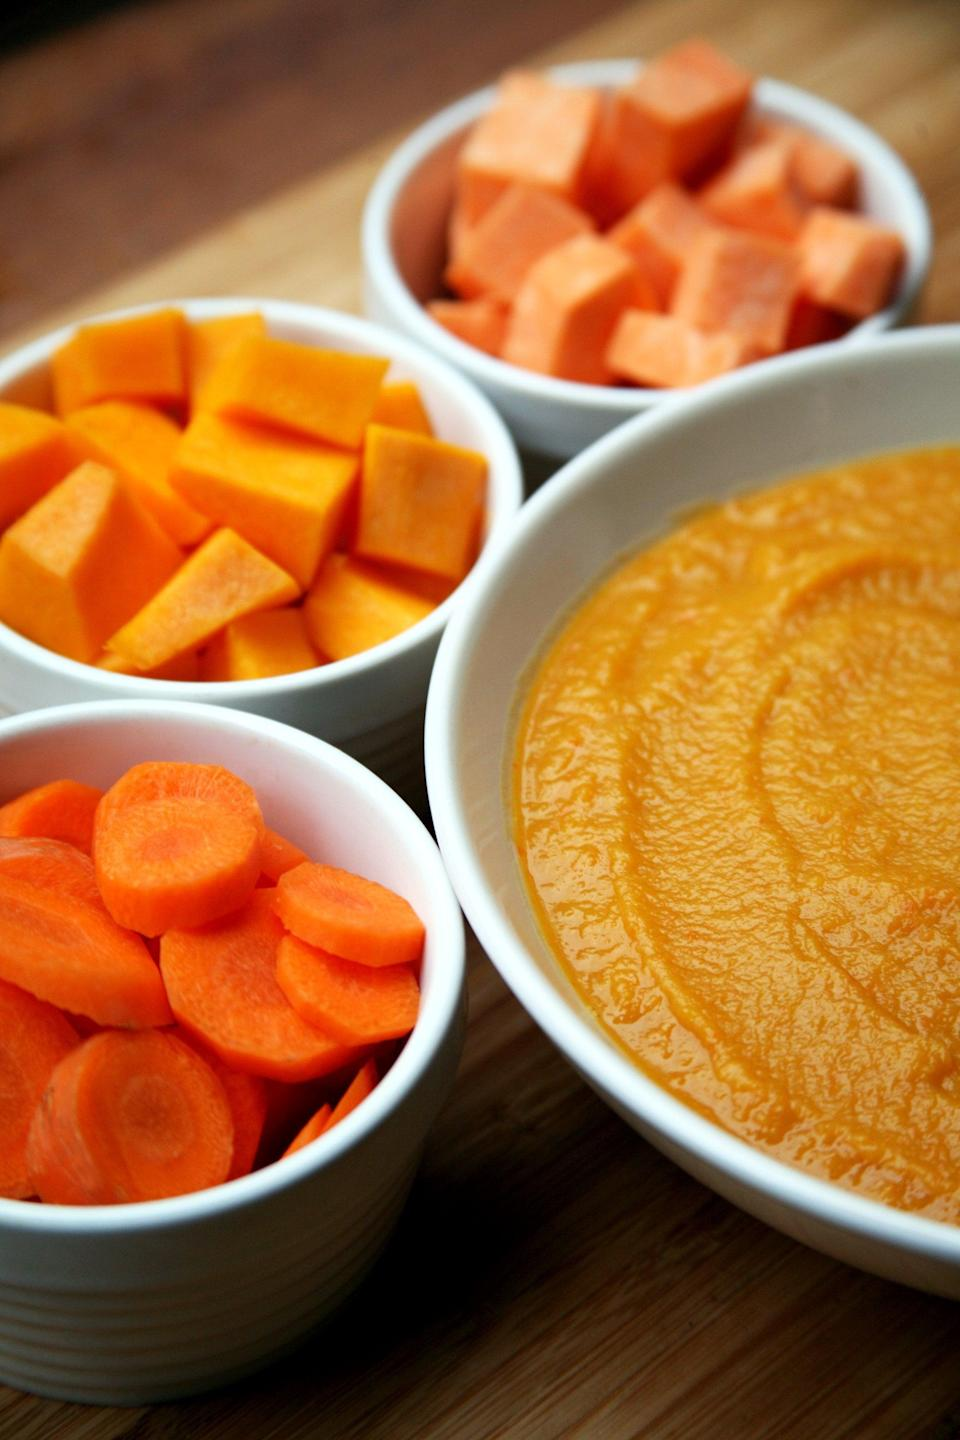 """<p>Packed with both fiber and protein, this creamy and thick soup is a great plant-based dinner option. All it takes is 10 minutes of prep. </p> <p><strong>Get the recipe:</strong> <a href=""""https://www.popsugar.com/fitness/Squash-Sweet-Potato-Carrot-White-Bean-Soup-36020648"""" class=""""link rapid-noclick-resp"""" rel=""""nofollow noopener"""" target=""""_blank"""" data-ylk=""""slk:slow-cooker squash, sweet potato, carrot, and white bean soup"""">slow-cooker squash, sweet potato, carrot, and white bean soup</a></p>"""